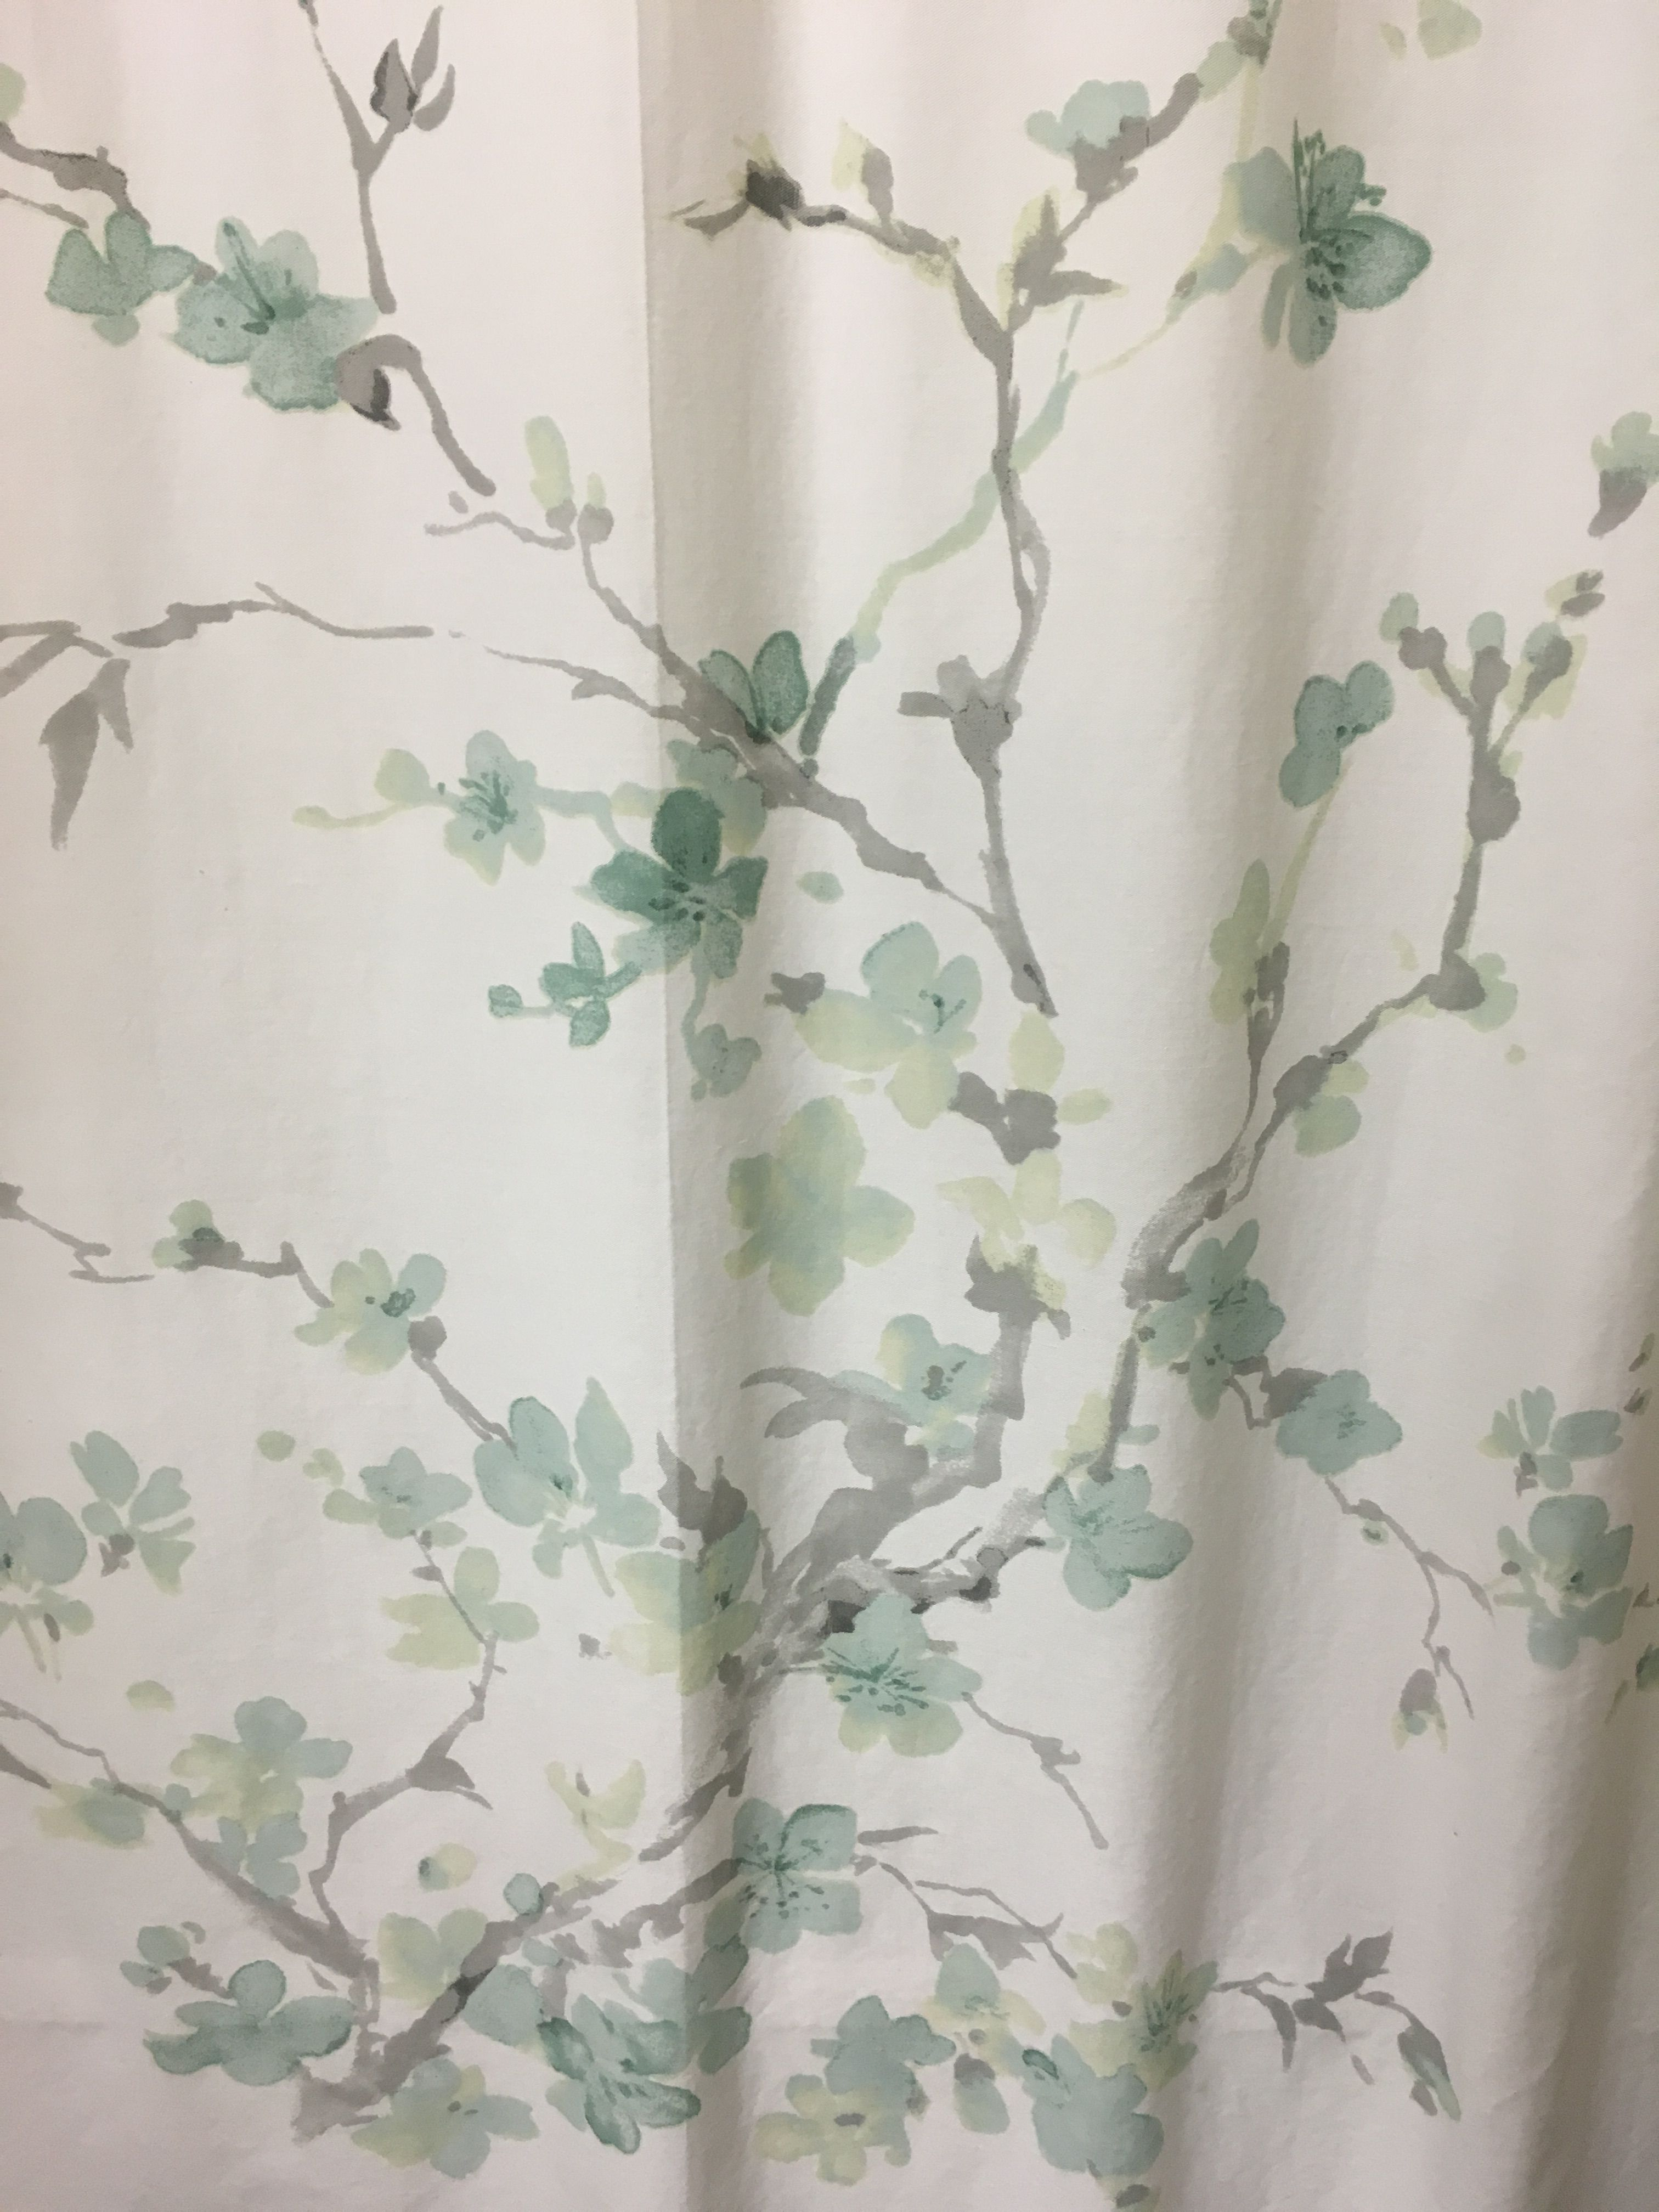 Tahari Shower Curtain Room Decor Bathrooms Remodel House Rooms